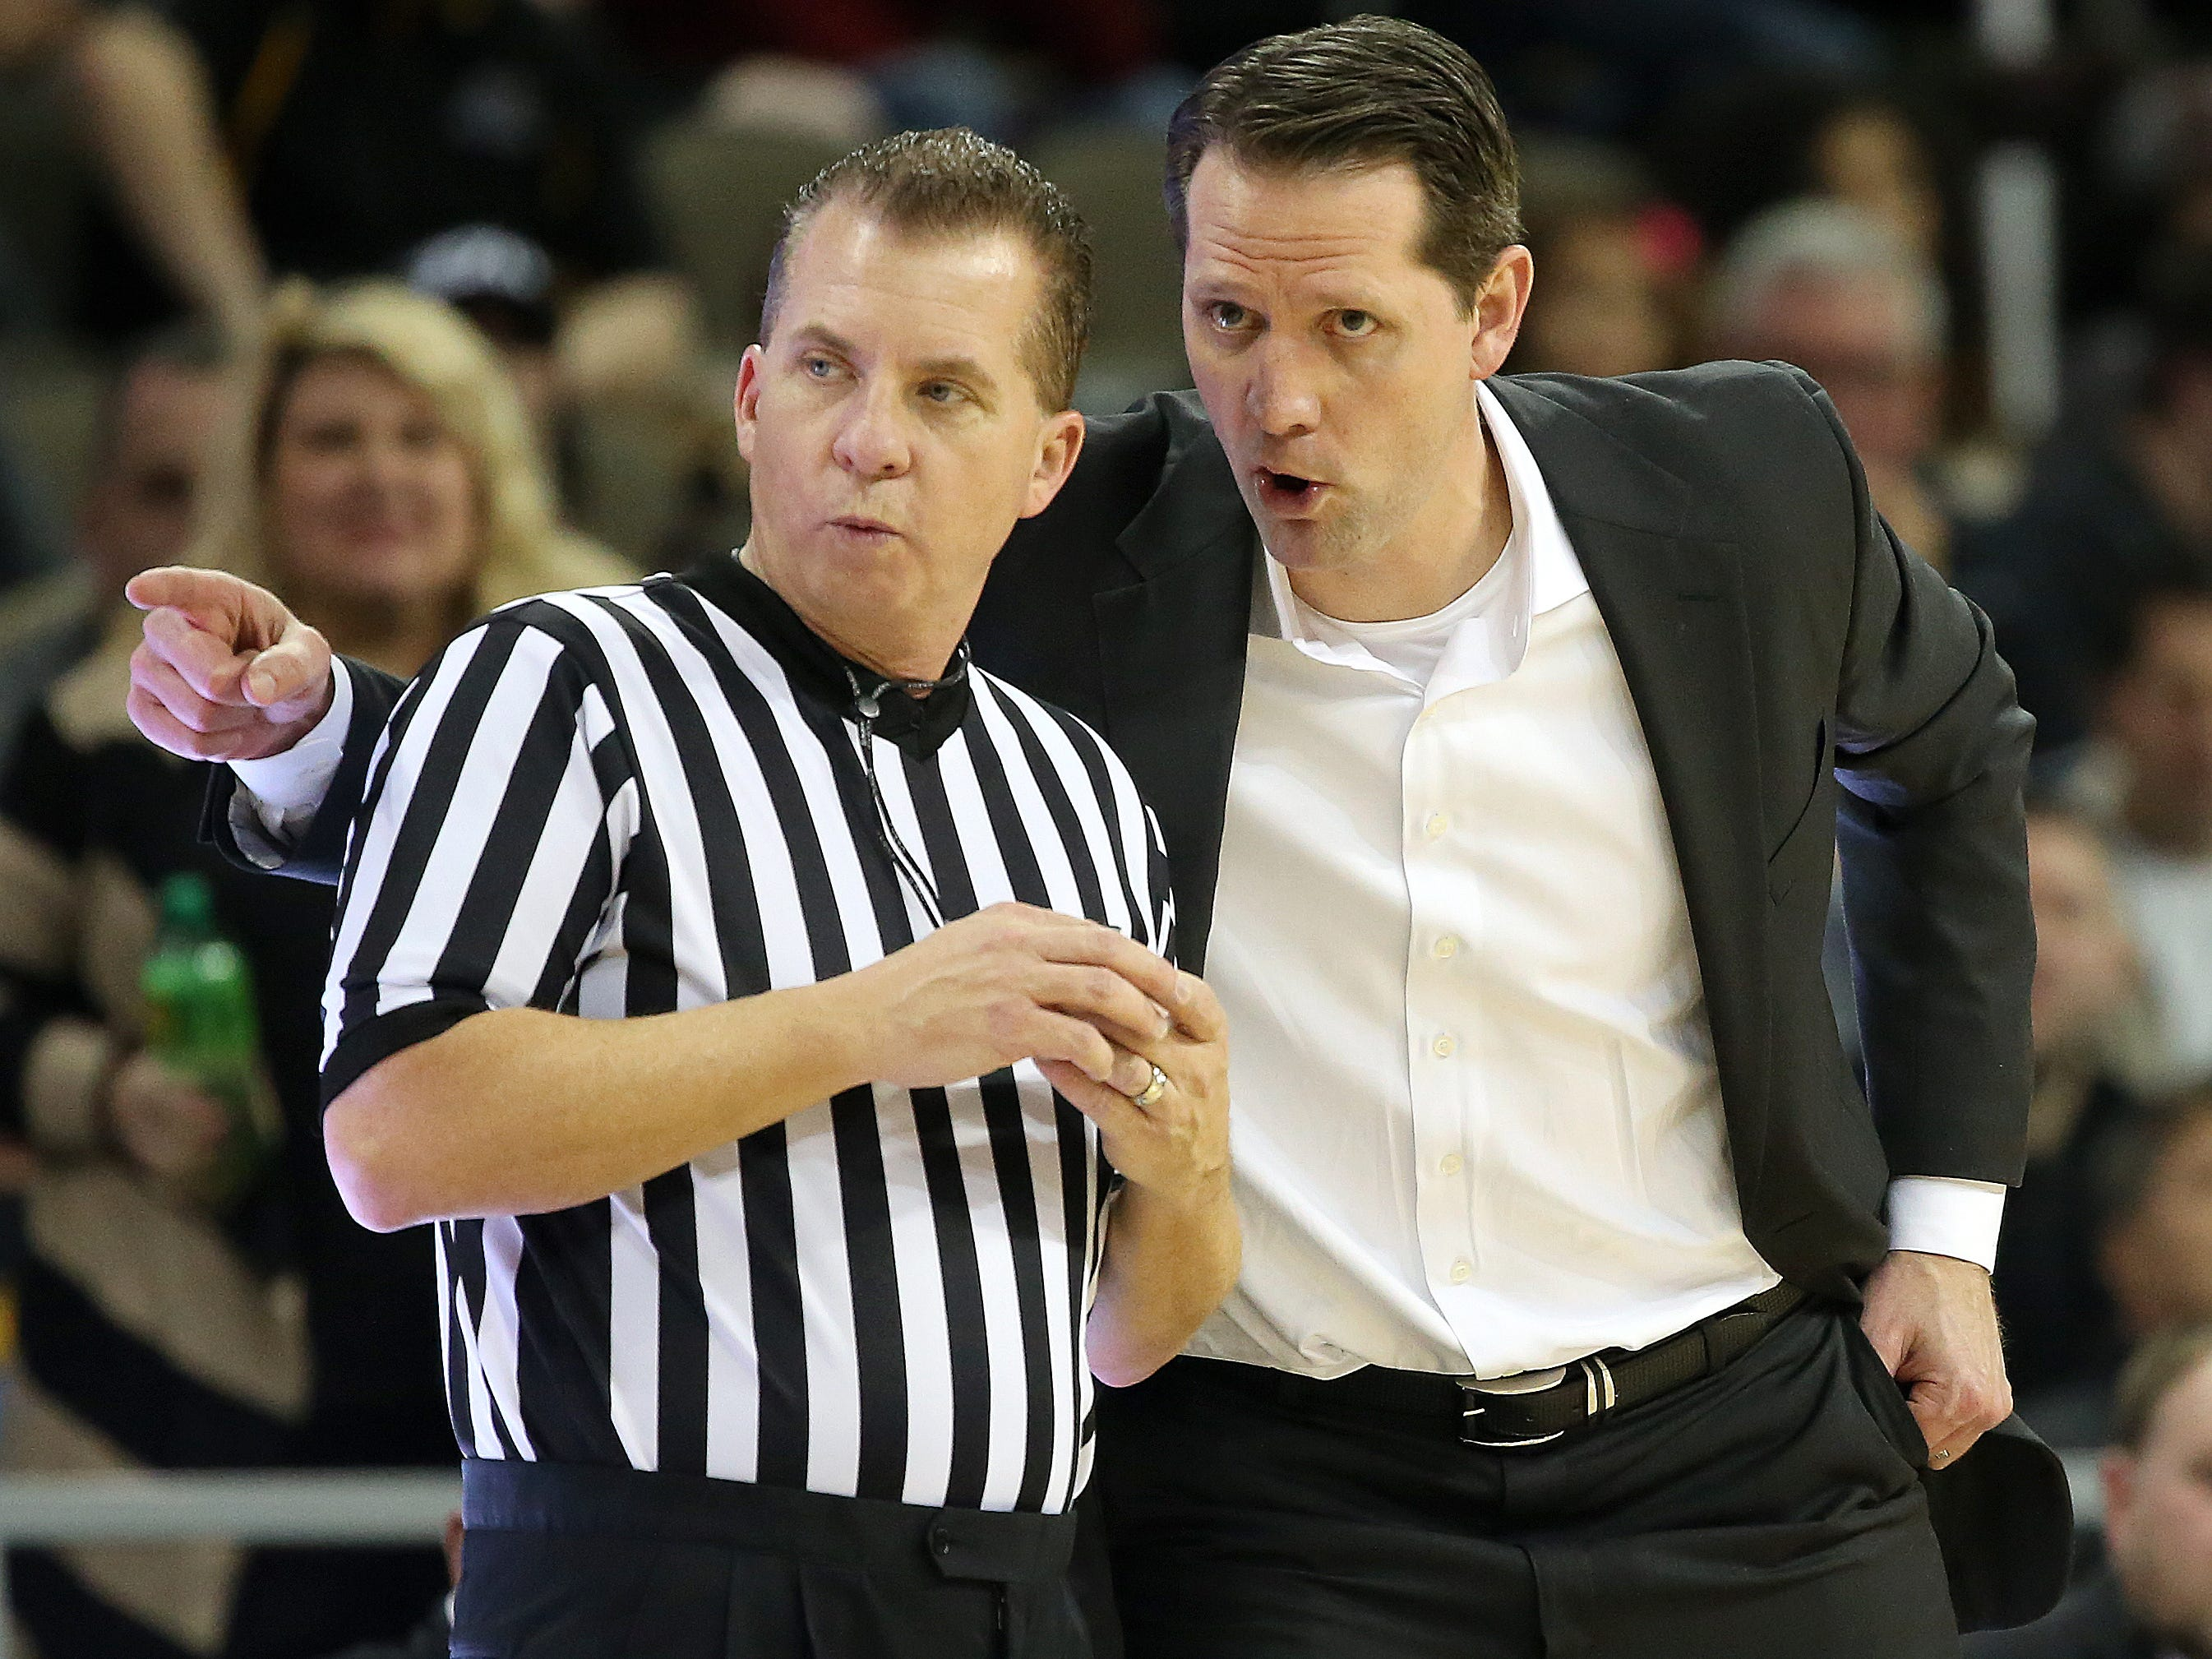 Northern Kentucky Norse head coach John Brannen, right, talks to an official in the first half during the NCAA college basketball game between Oakland Golden Grizzlies and the Northern Kentucky Norse, Friday, Jan. 26, 2018, at BB&T Arena in Highland Heights, Kentucky.